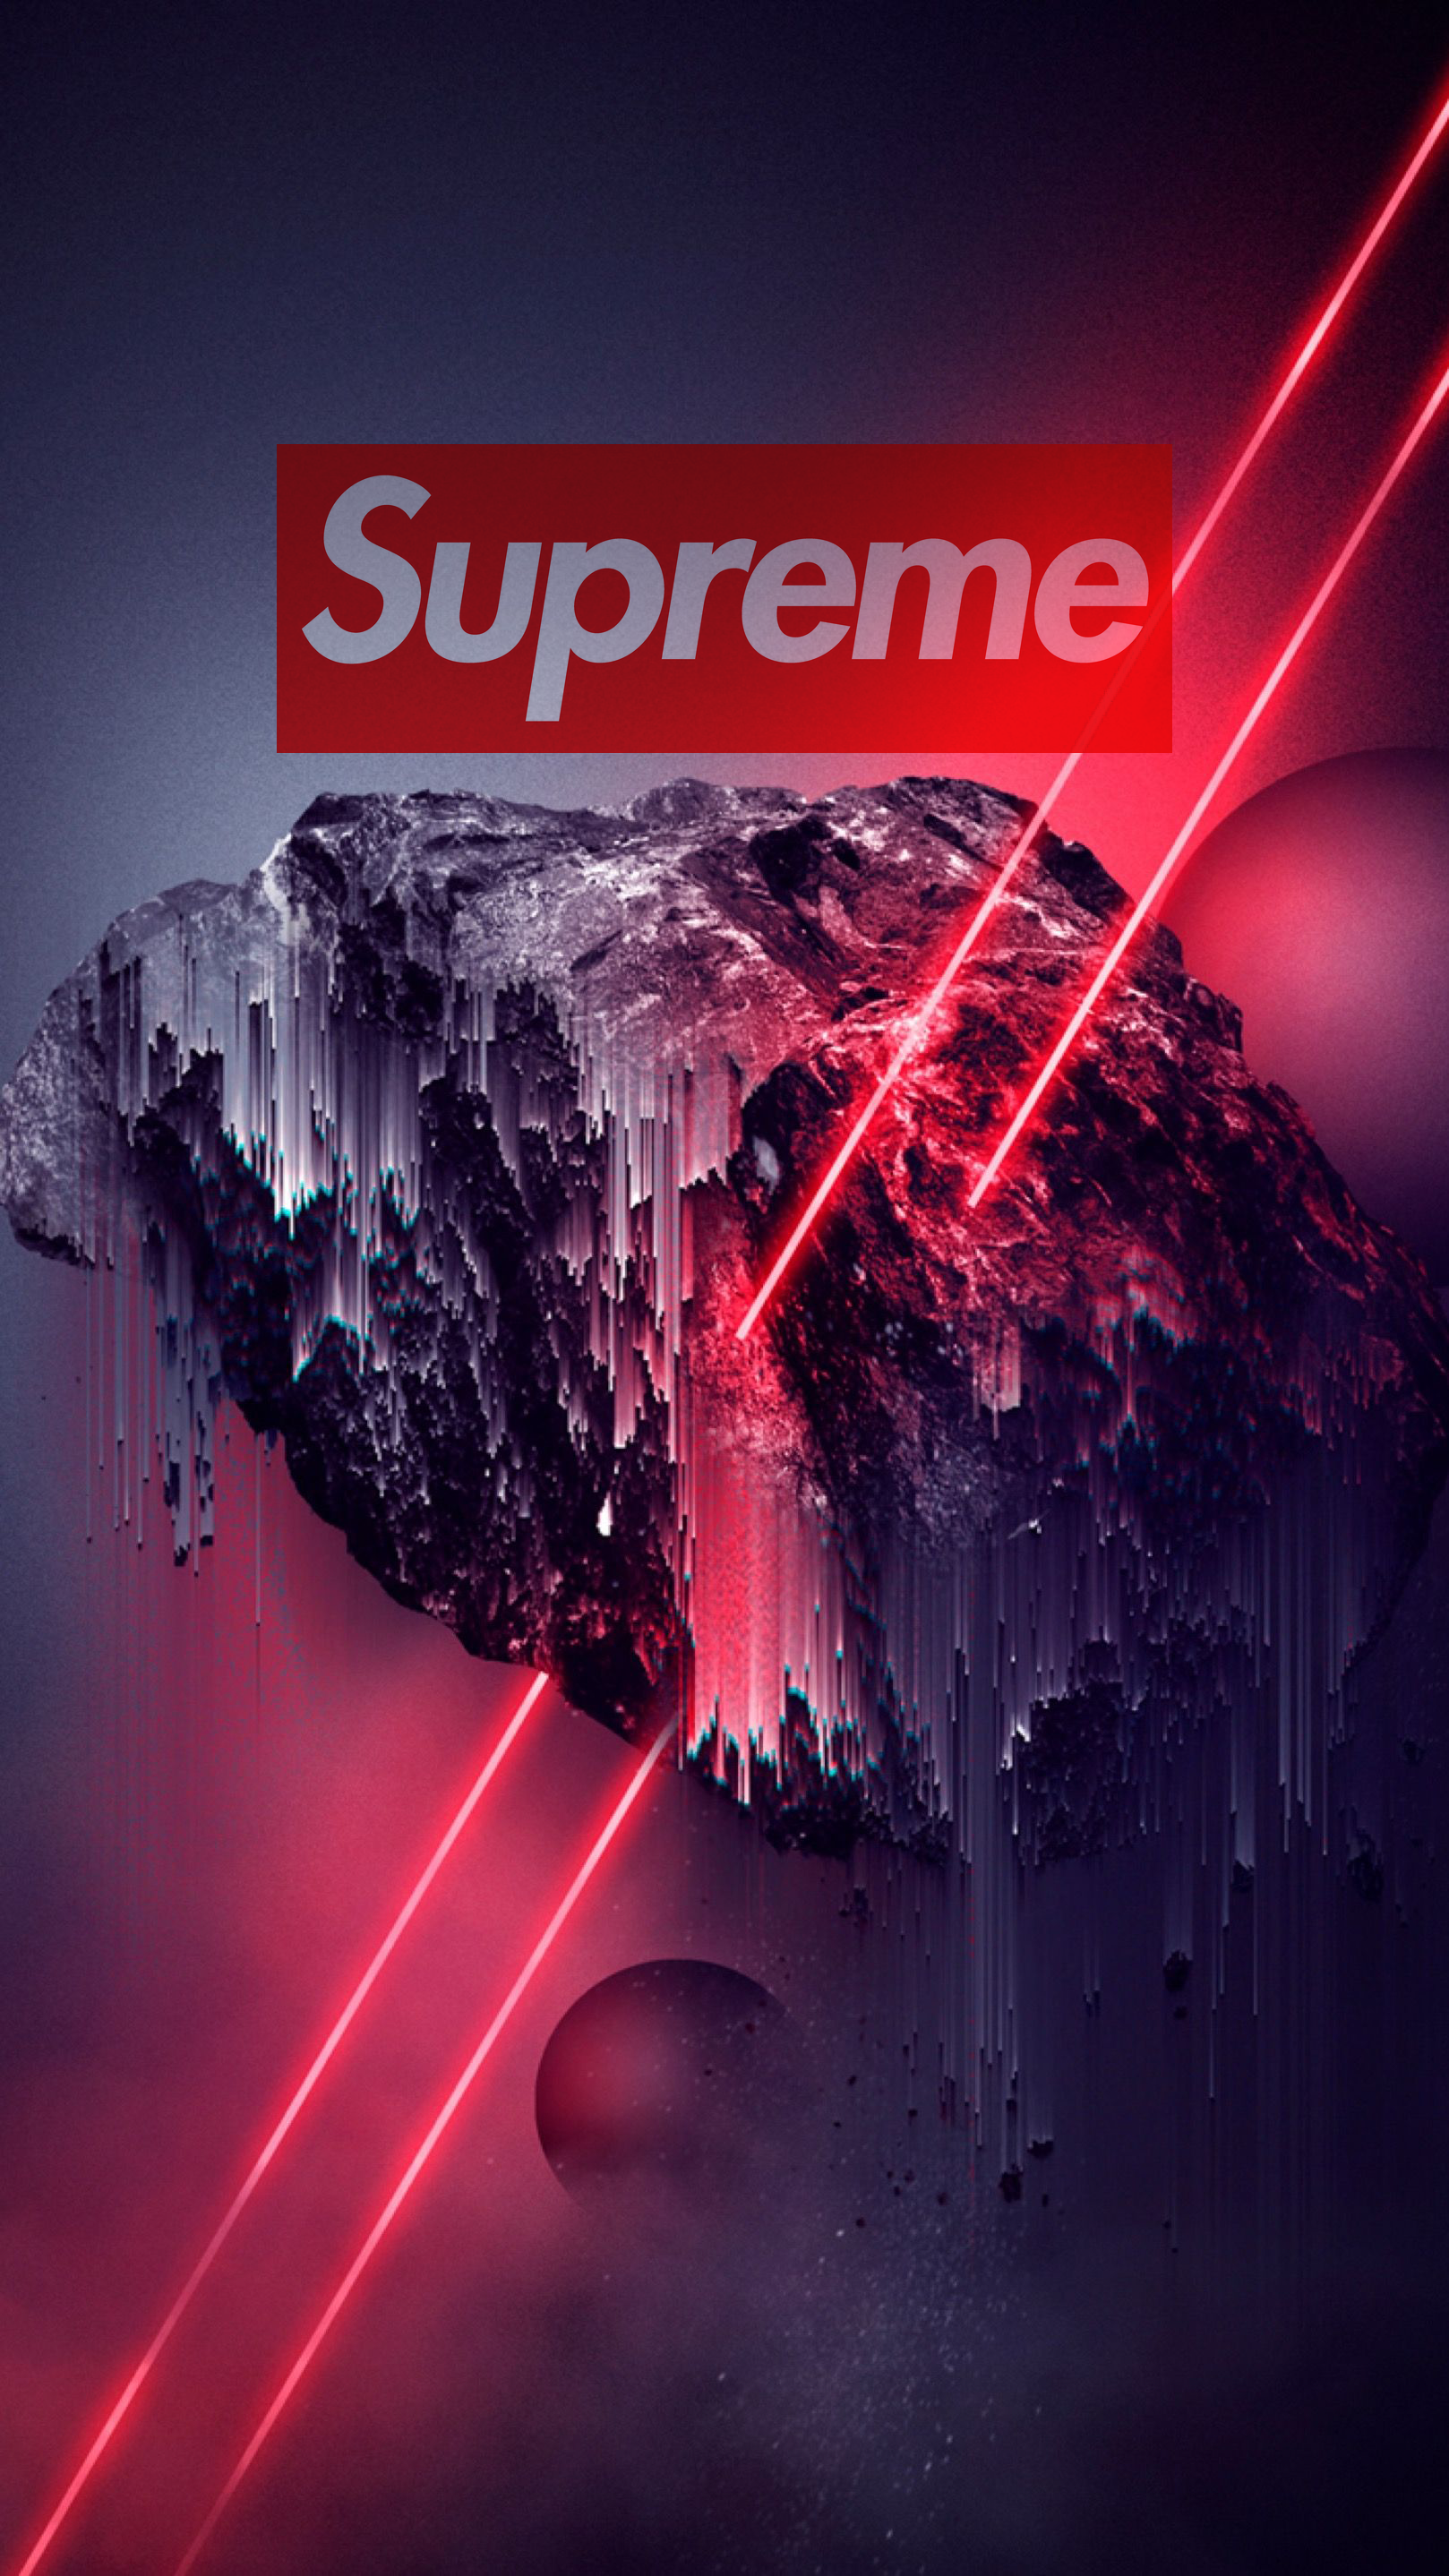 Supreme Cool Wallpaper Iphone Smartphone Hintergrund Hintergrund Iphone Gaming Hintergrunde